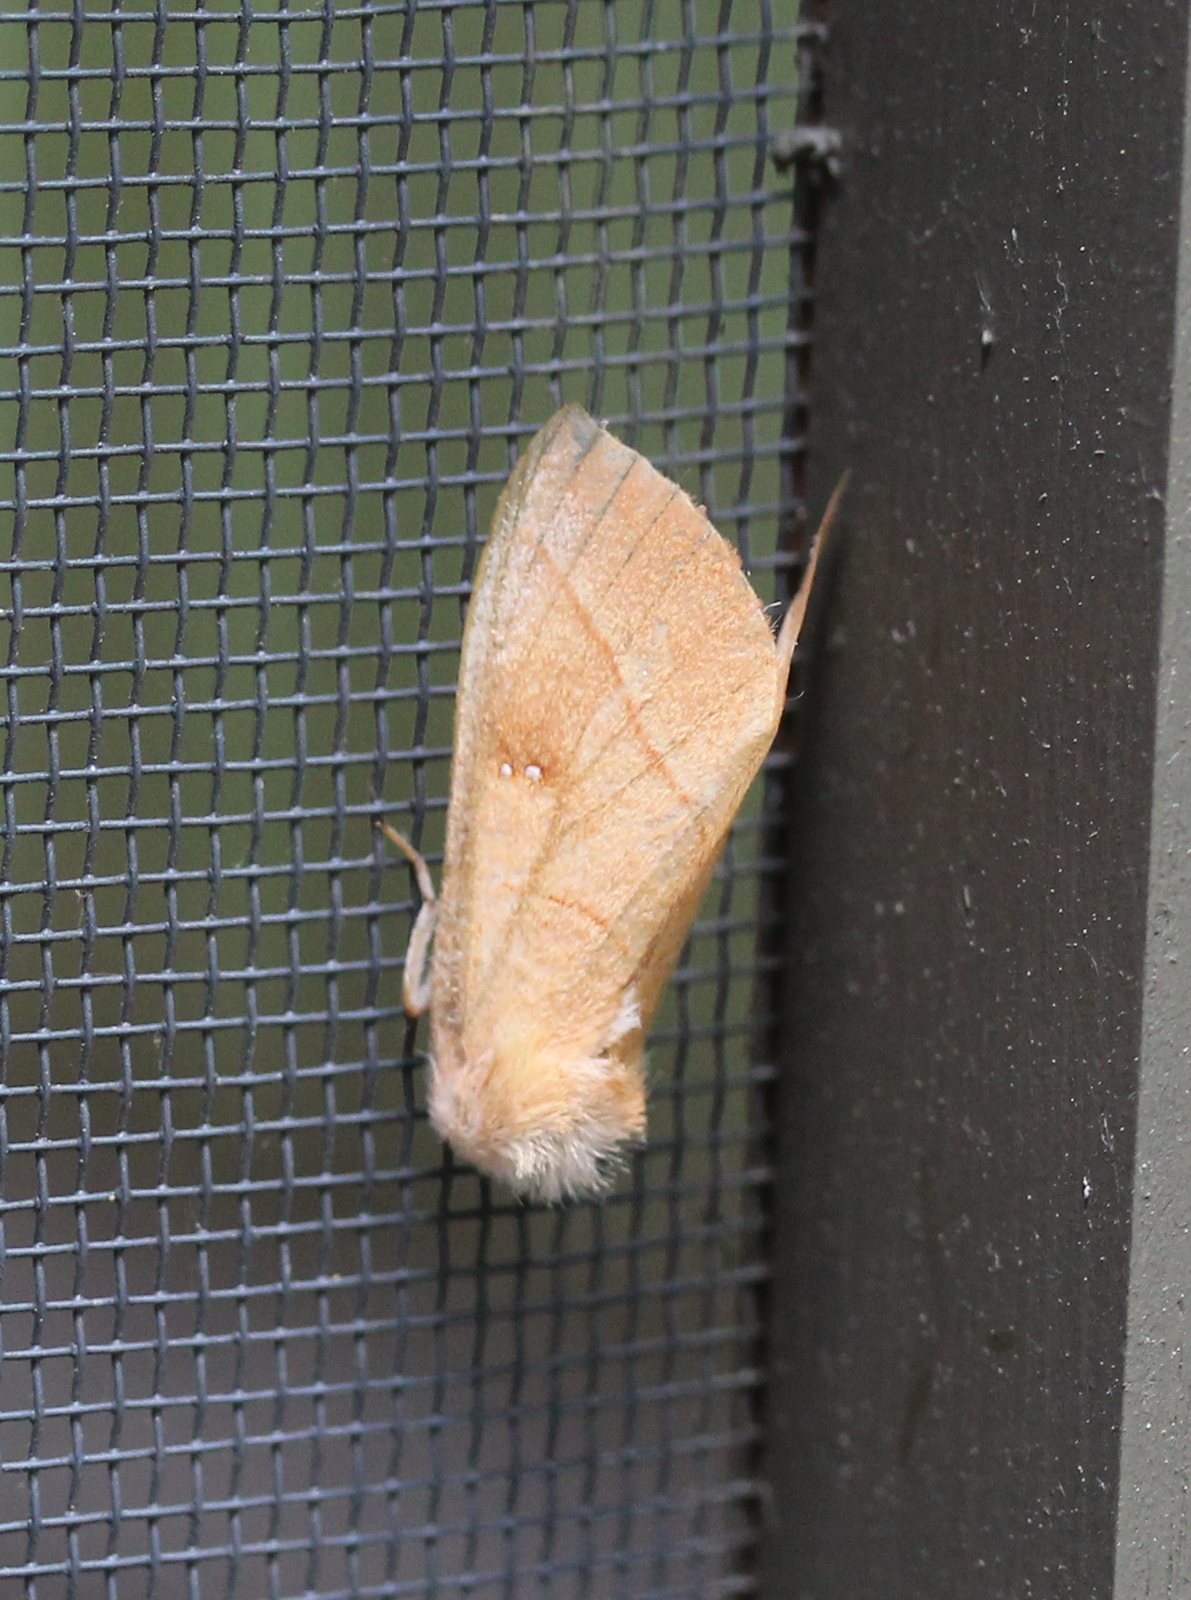 yellow/tan moth on porch screen